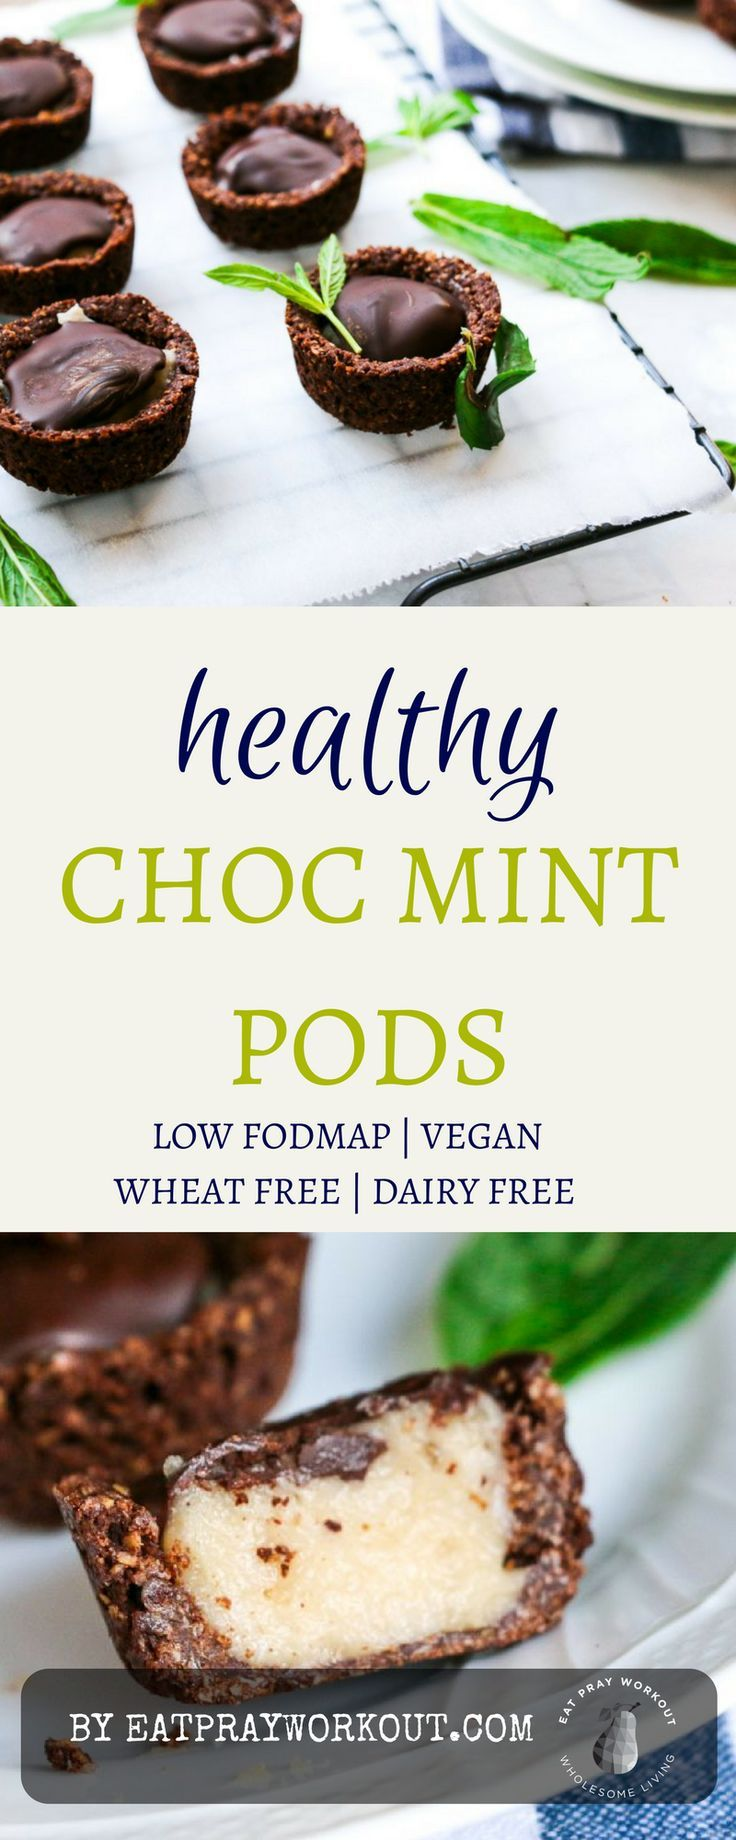 Healthy Alternative to Pods Chocmint cups Recipe